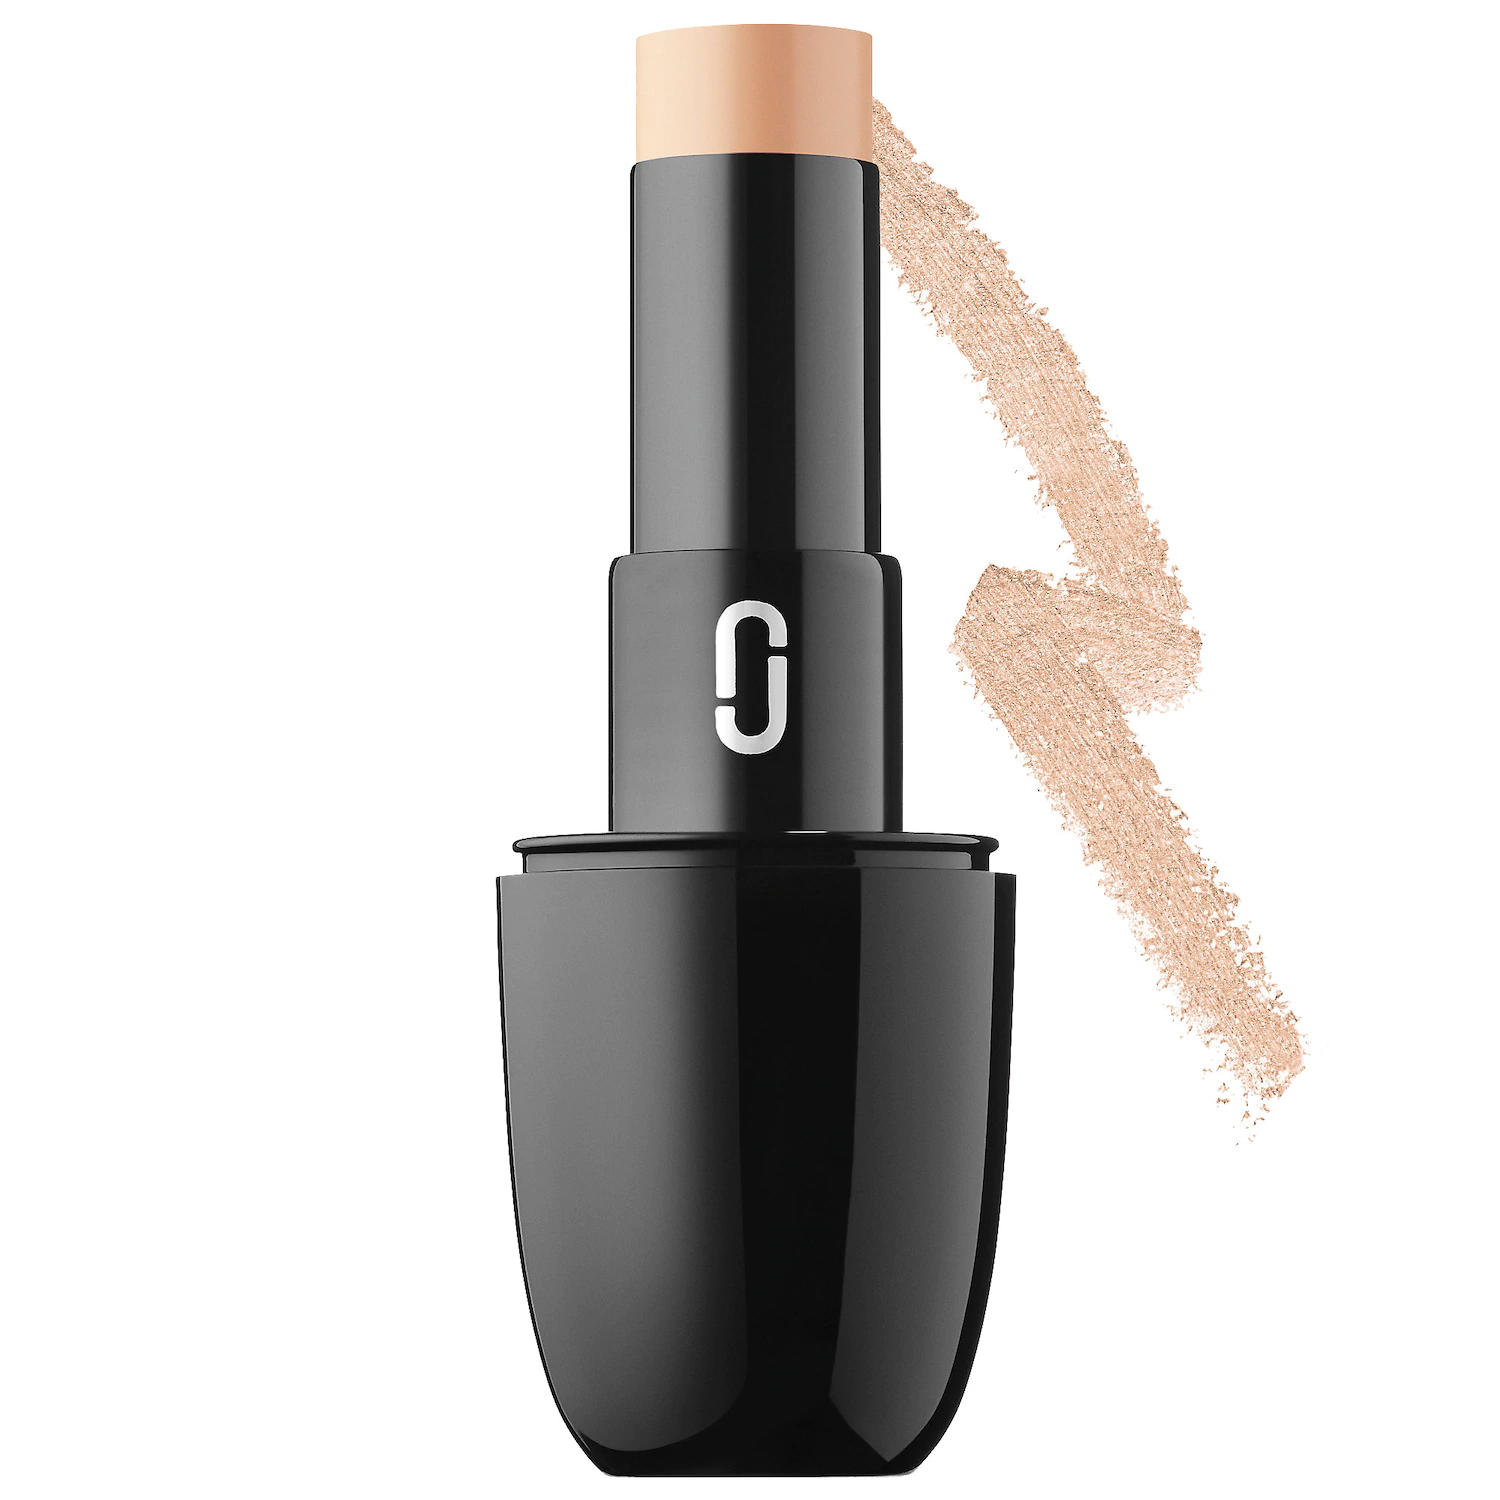 Marc Jacobs Accomplice Concealer & Touch-Up Stick Light 20